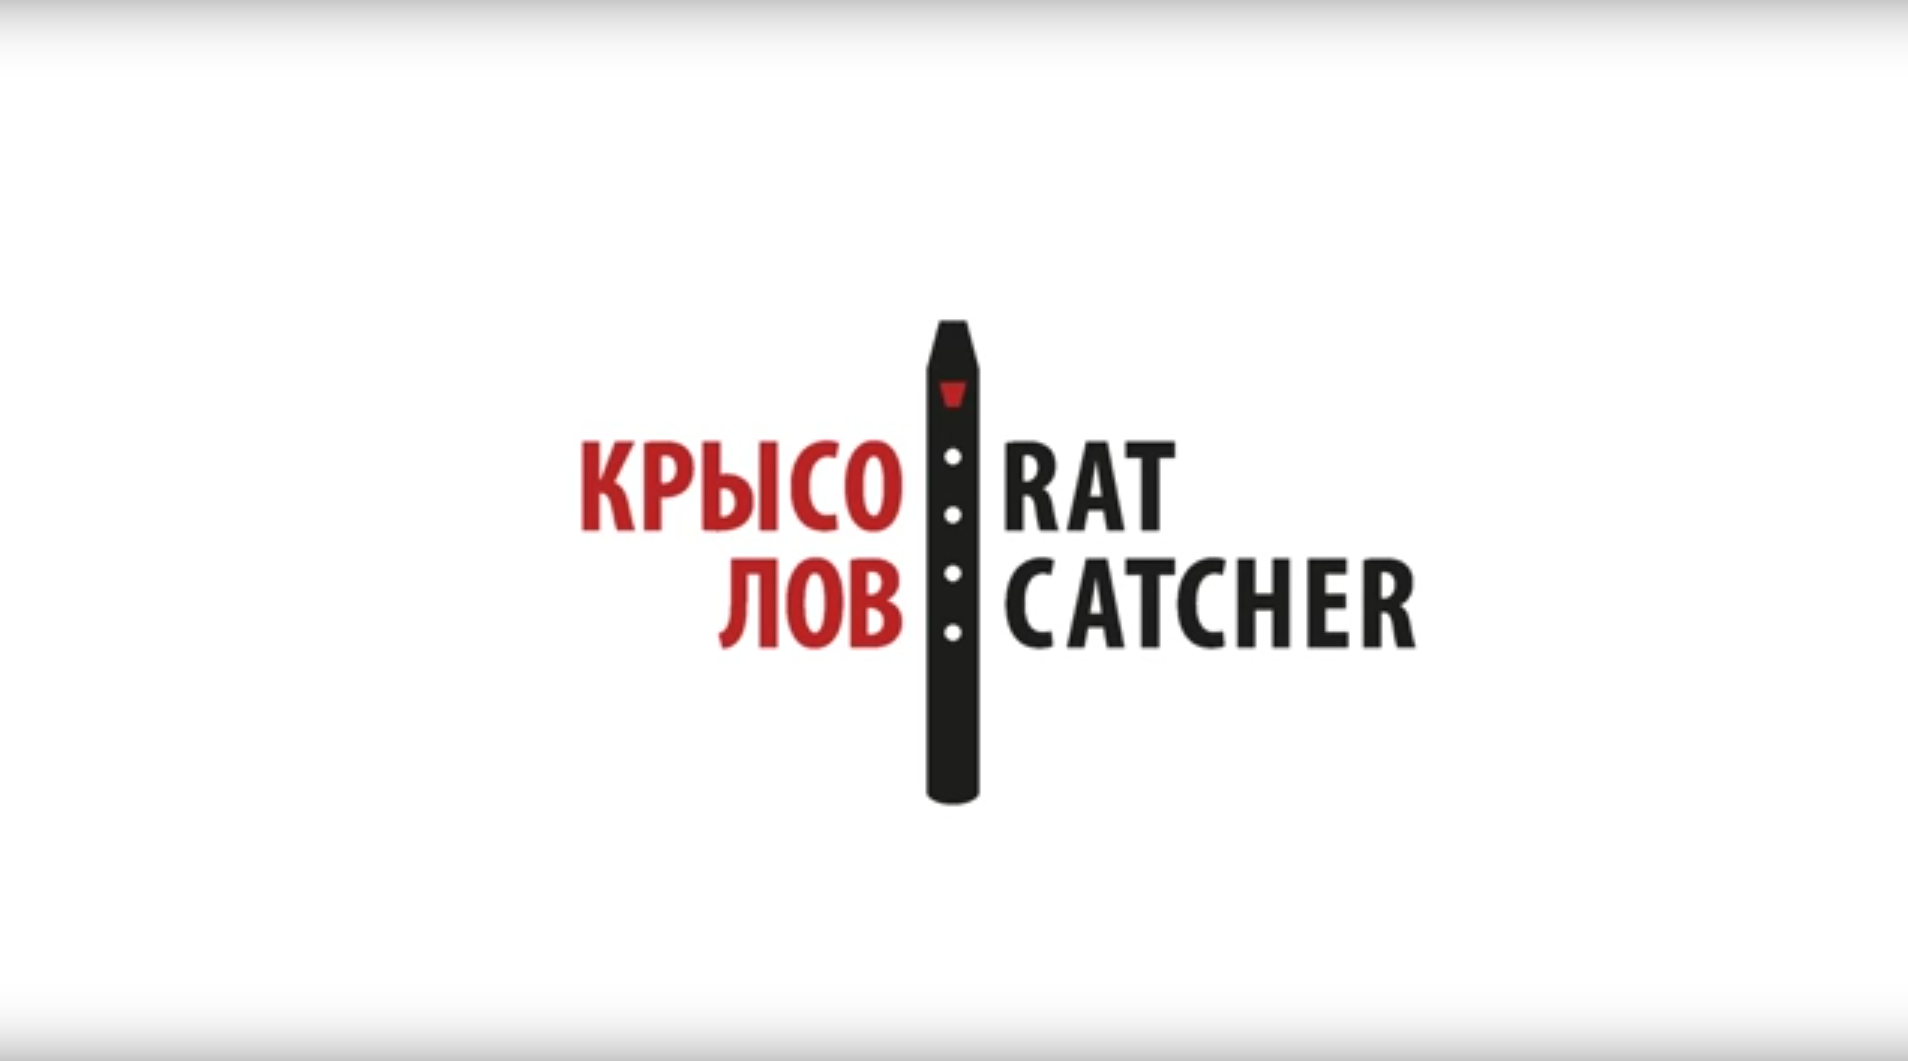 Ratcatcher project